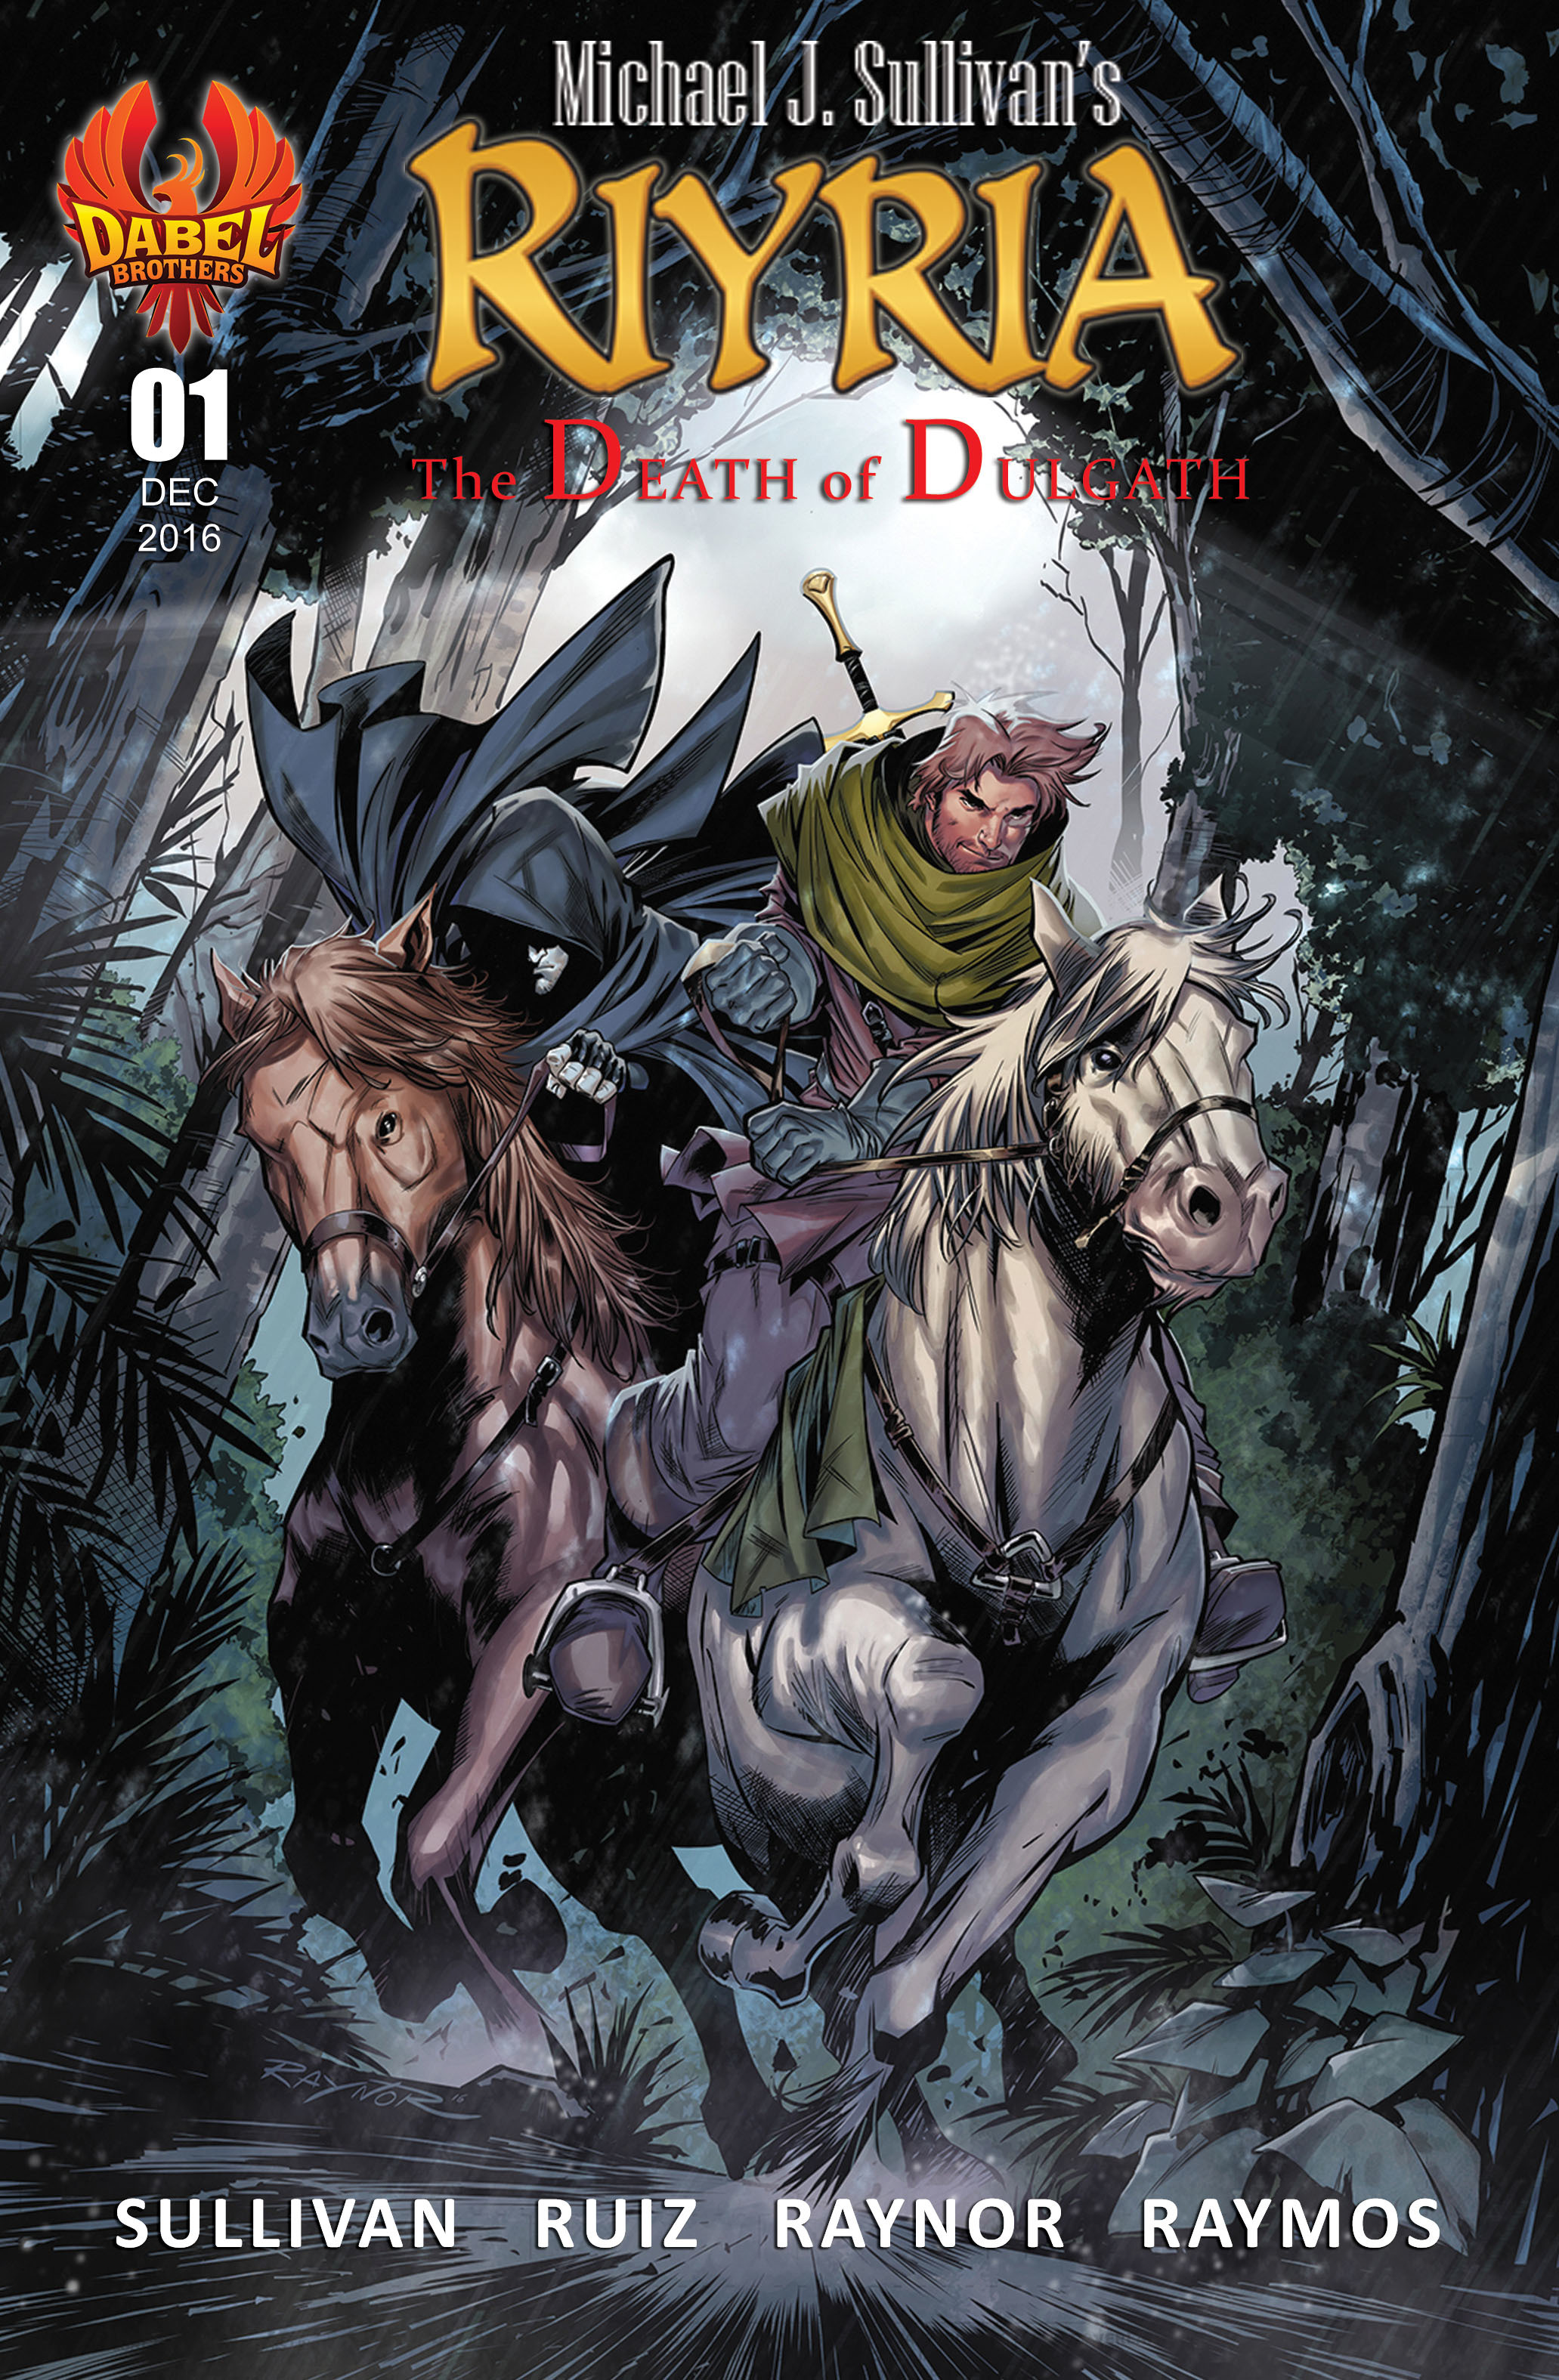 Death of Dulgath Graphic Novel Volume 1 (Riyria Graphic Novels)